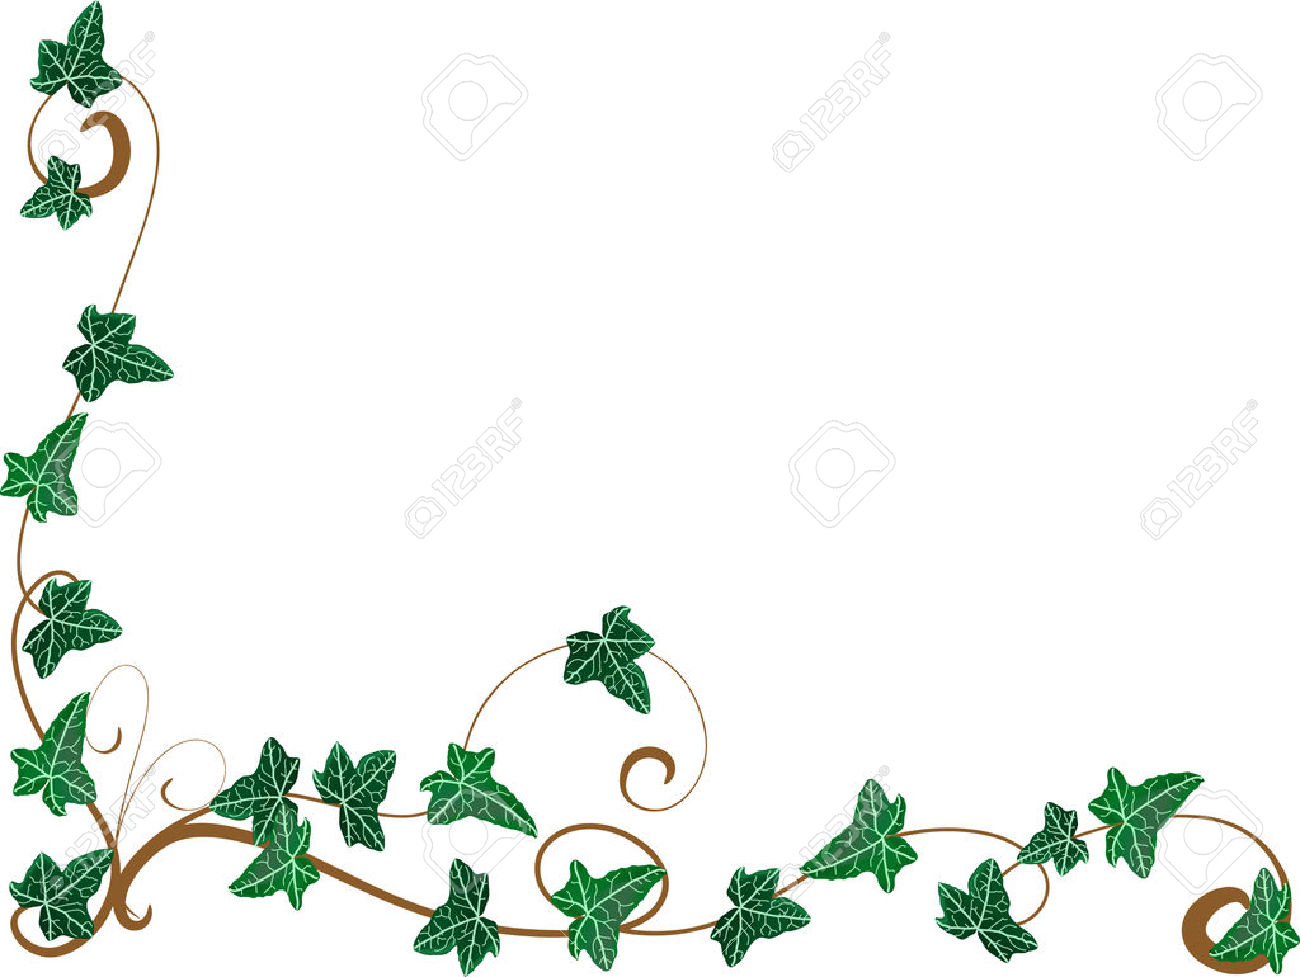 Scroll frames clipart border with watercolor ivy banner free library Vine Border Clipart | Free download best Vine Border Clipart on ... banner free library